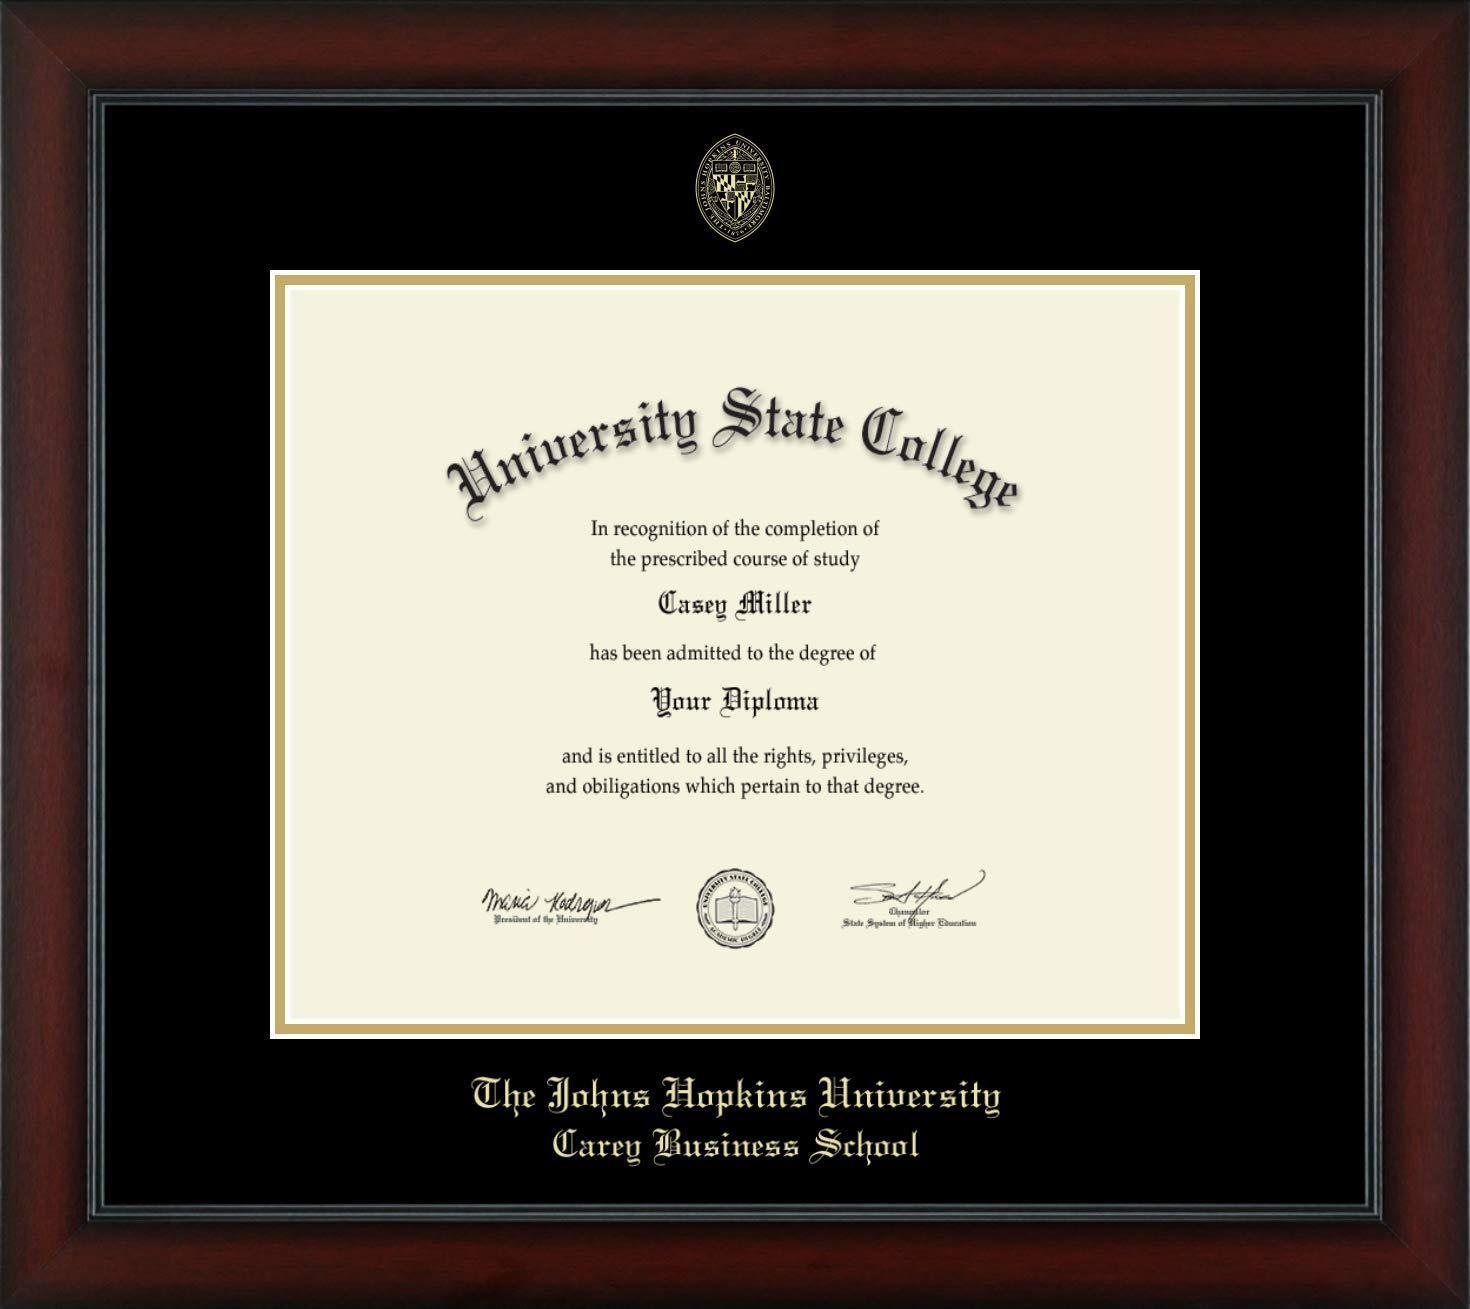 Johns Hopkins University Carey Business School - Officially Licensed - Gold Embossed Diploma Frame - Diploma Size 17'' x 14''